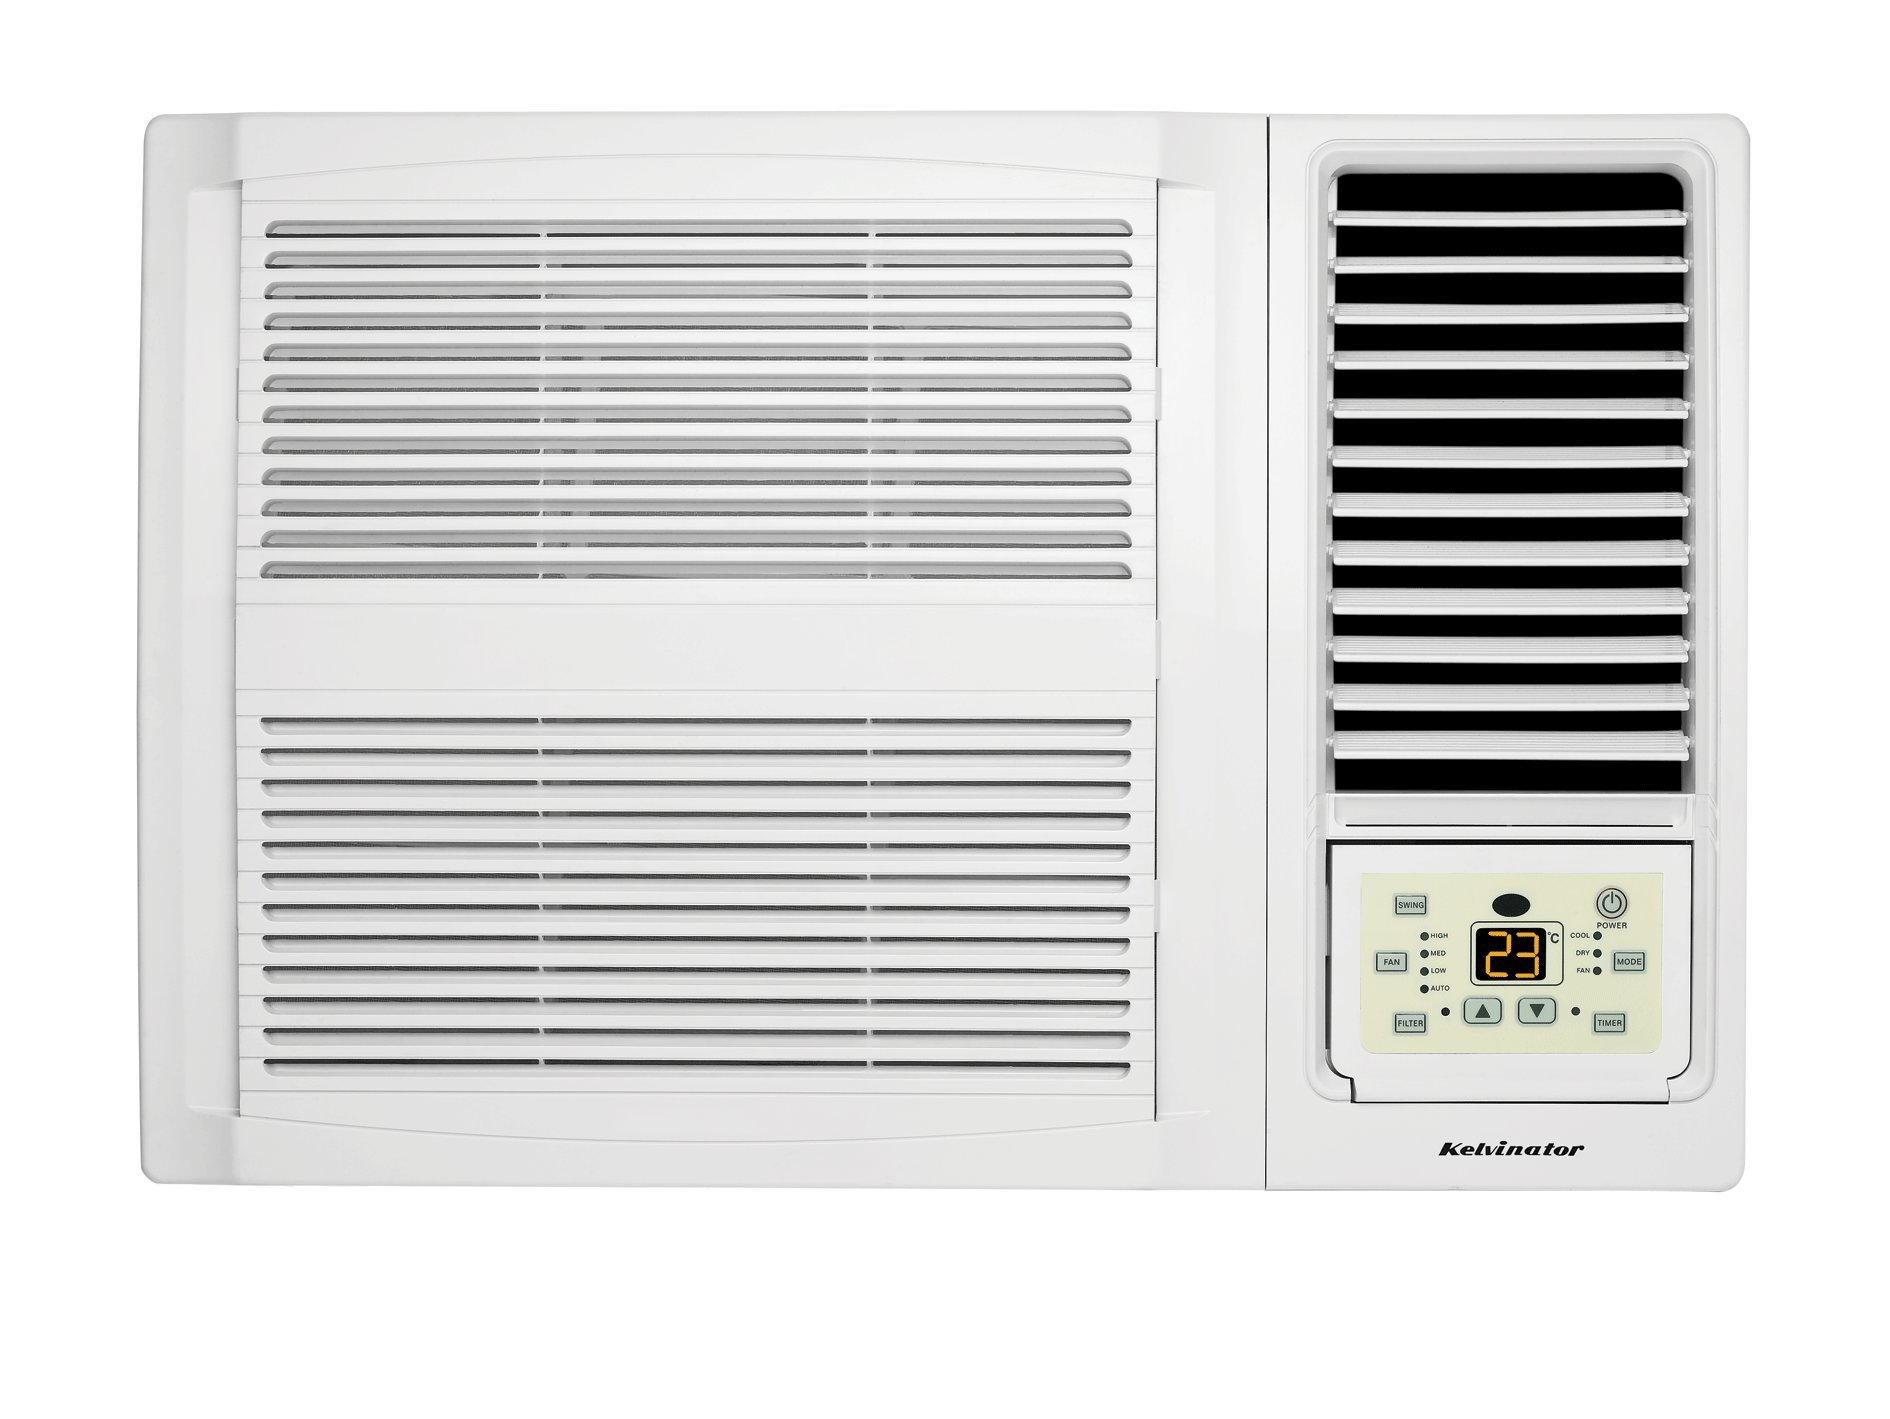 Kelvinator KWH53CRE 5.3kW Window Box Air Conditioner (Cooling Only) - FREE Delivery & Price Match* image